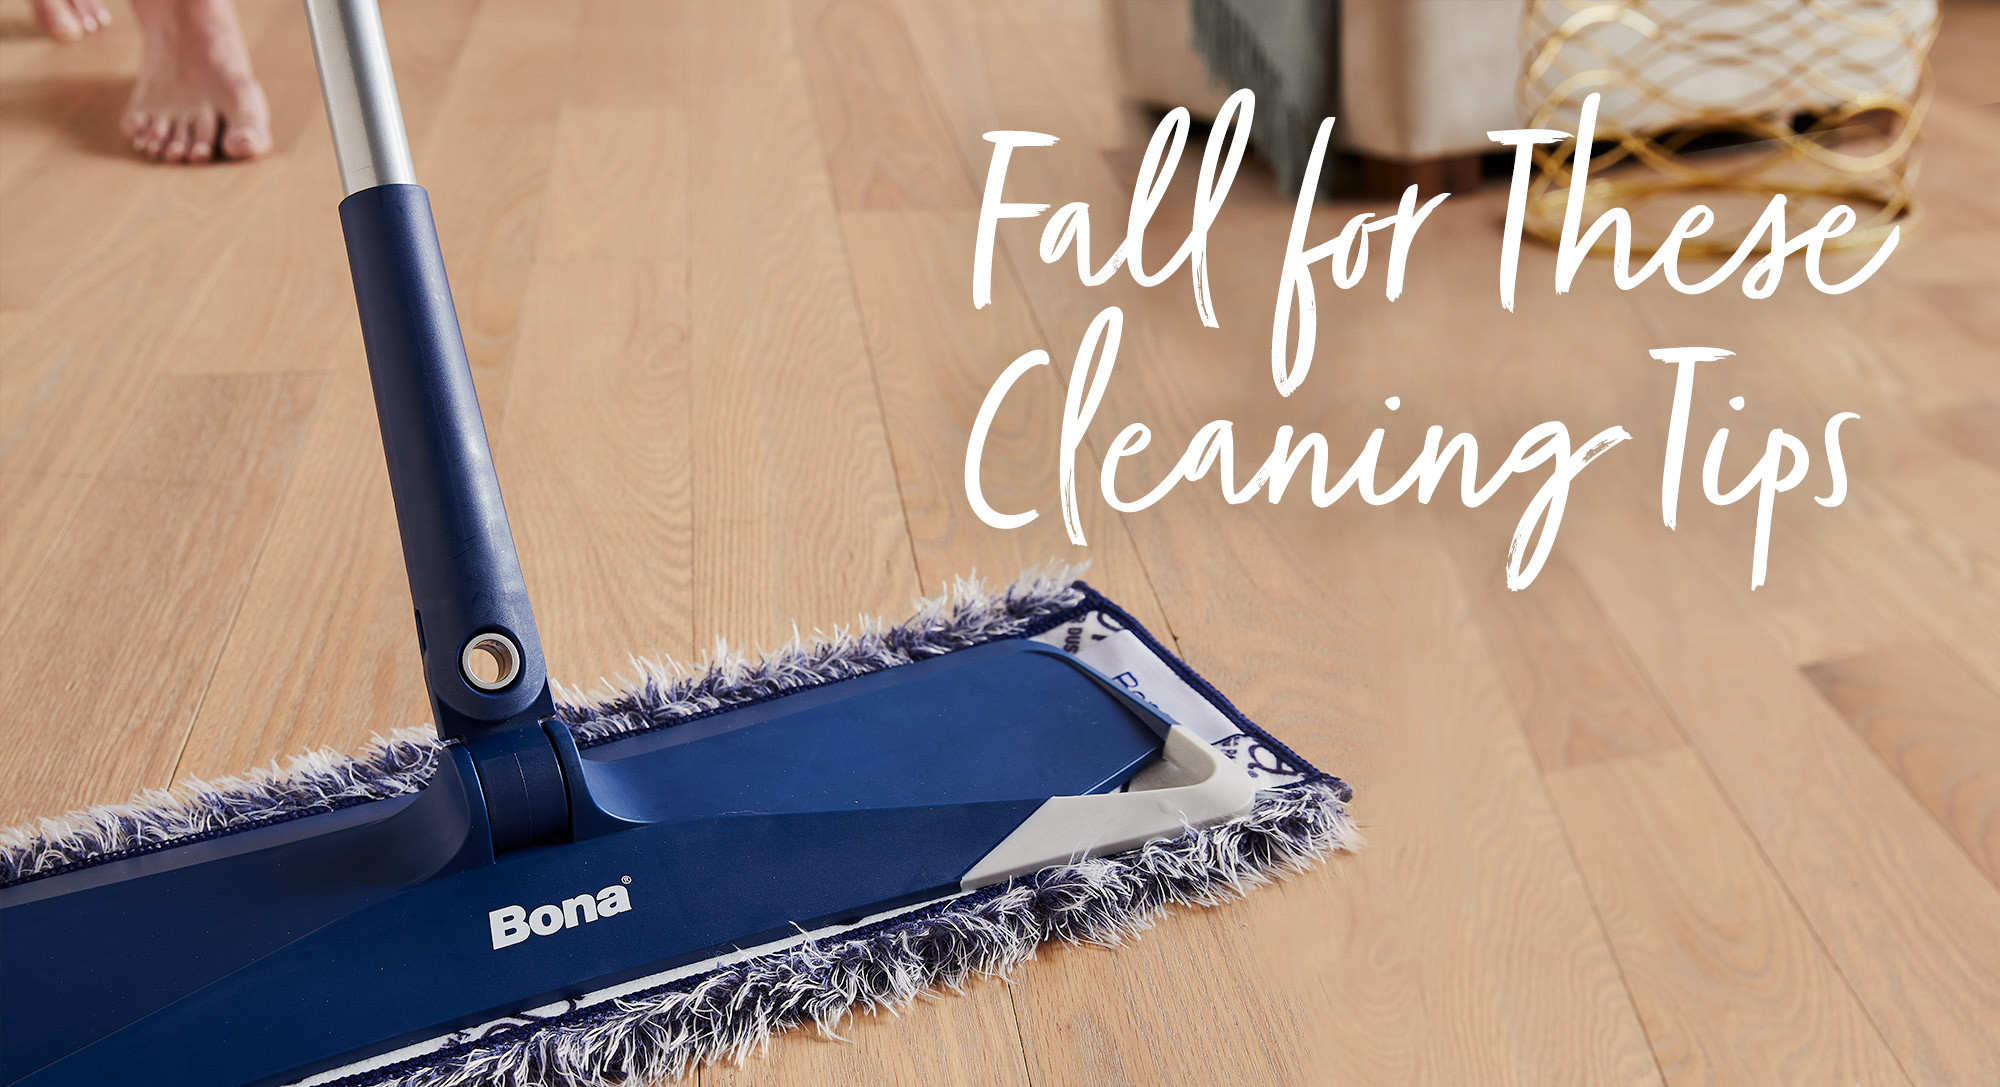 19 Famous Hardwood Floor Cleaning Chicago 2021 free download hardwood floor cleaning chicago of home bona us within fall feature2